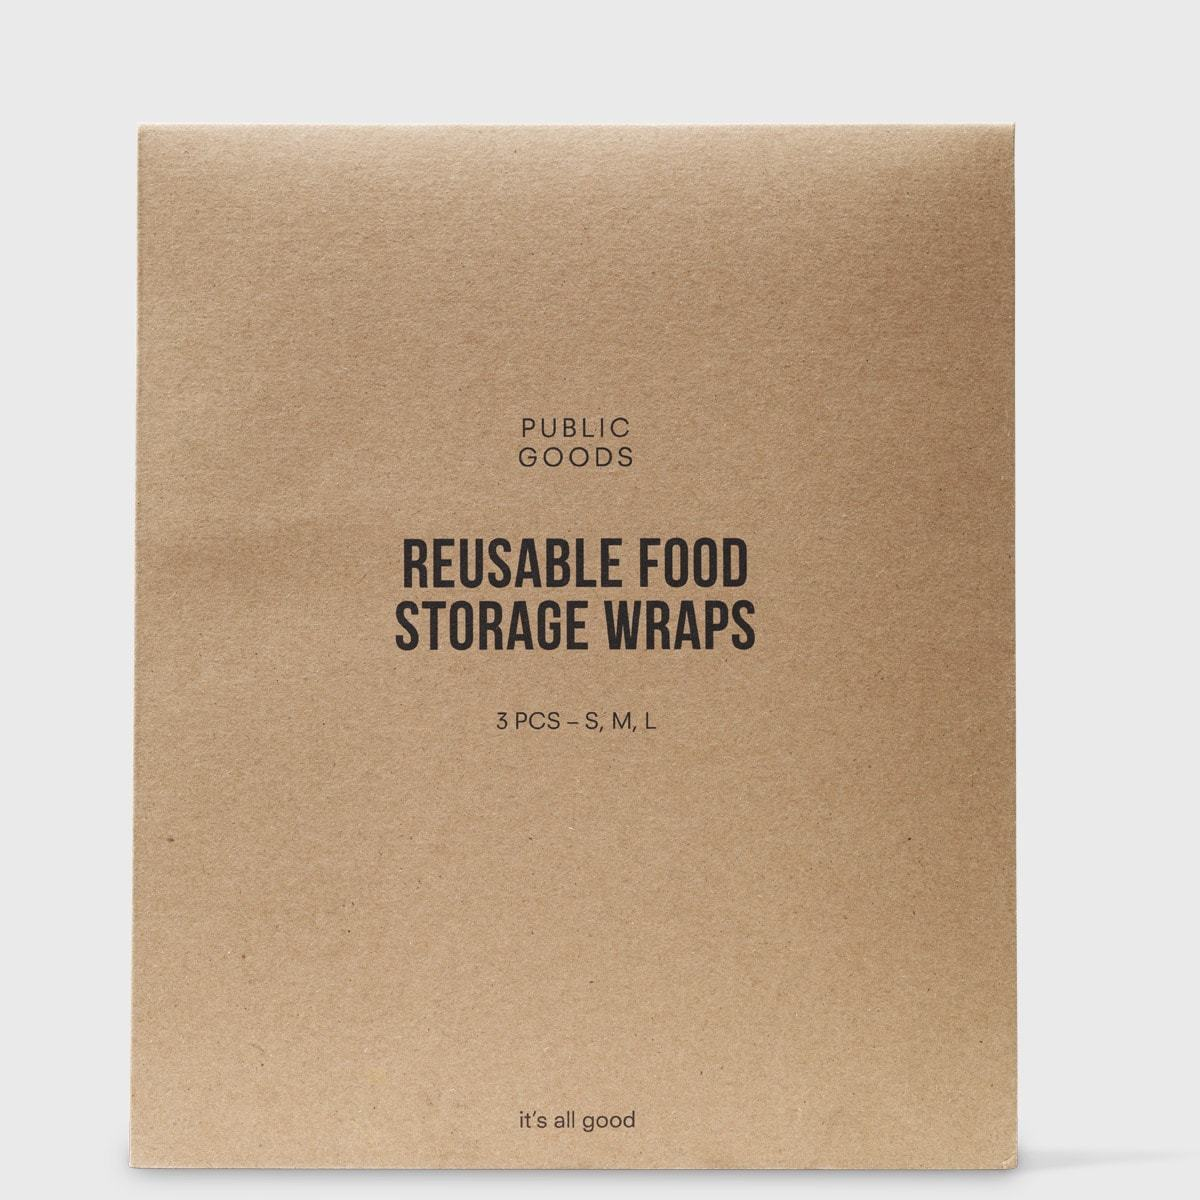 box of reusable food storage wraps